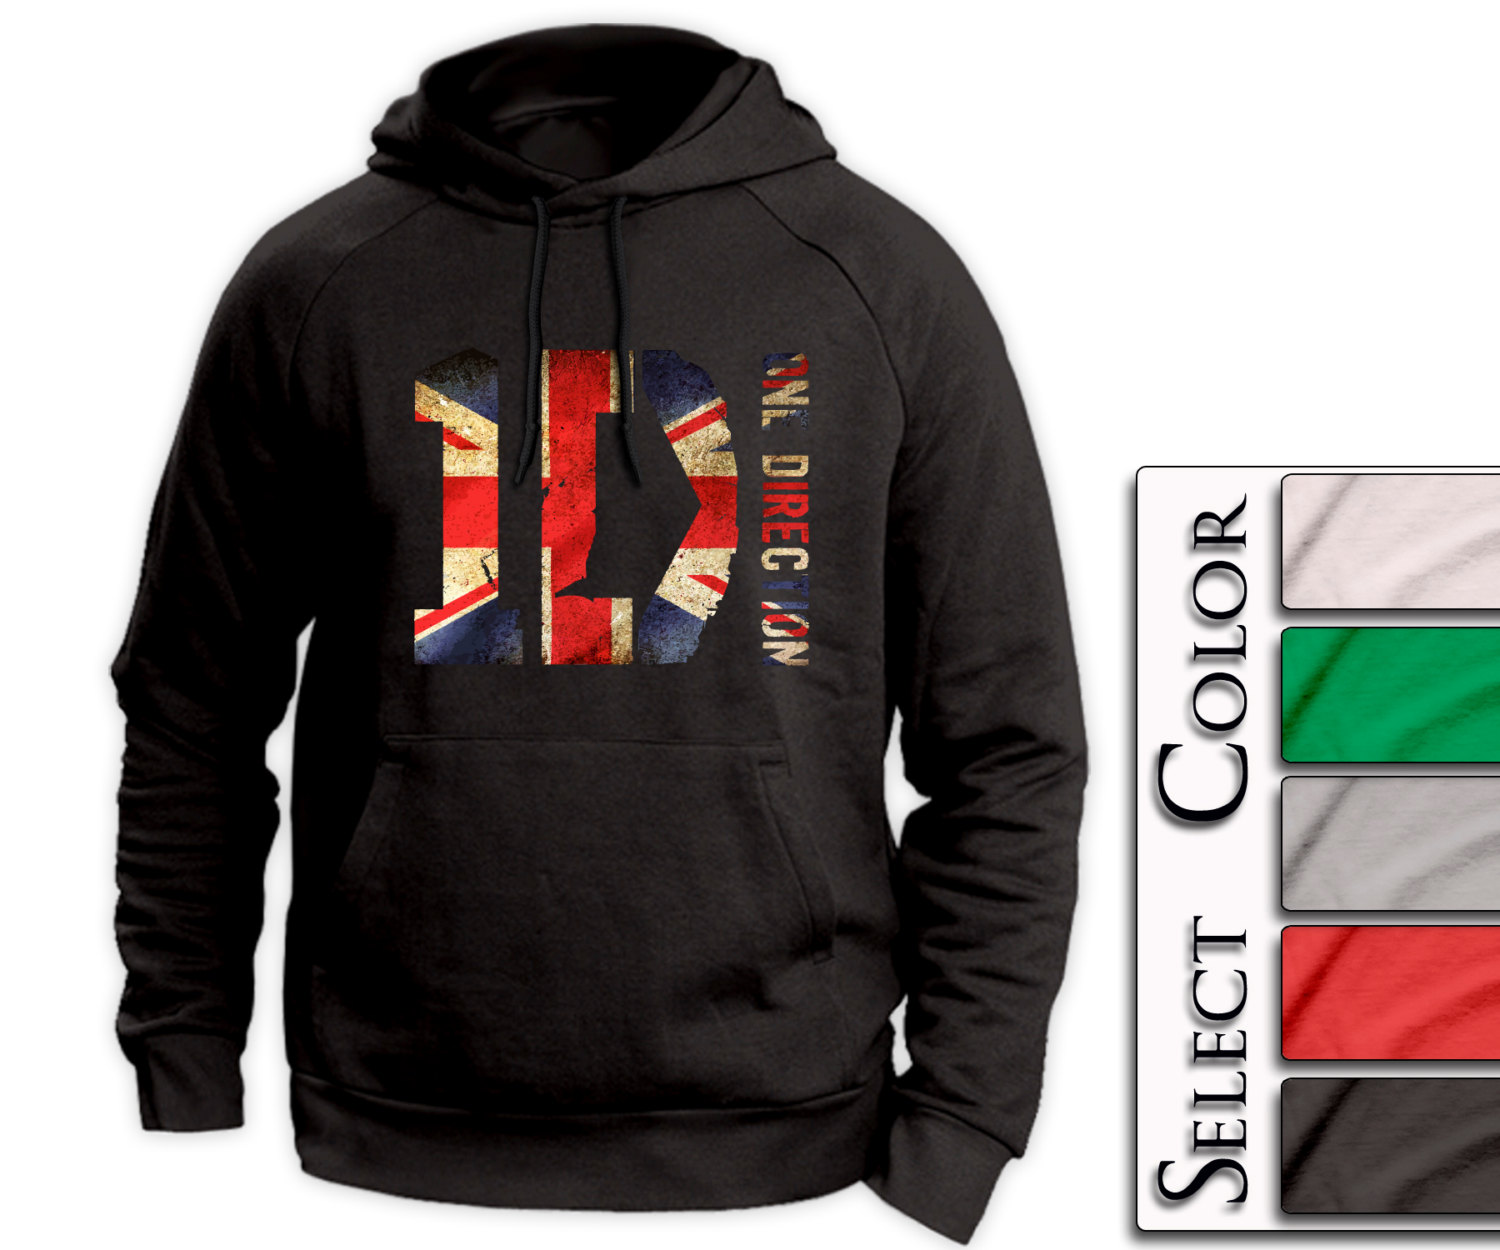 ONE DIRECTION Hoodie - British Print - Tour Niall Liam Zayn Louis Harry 1D tee